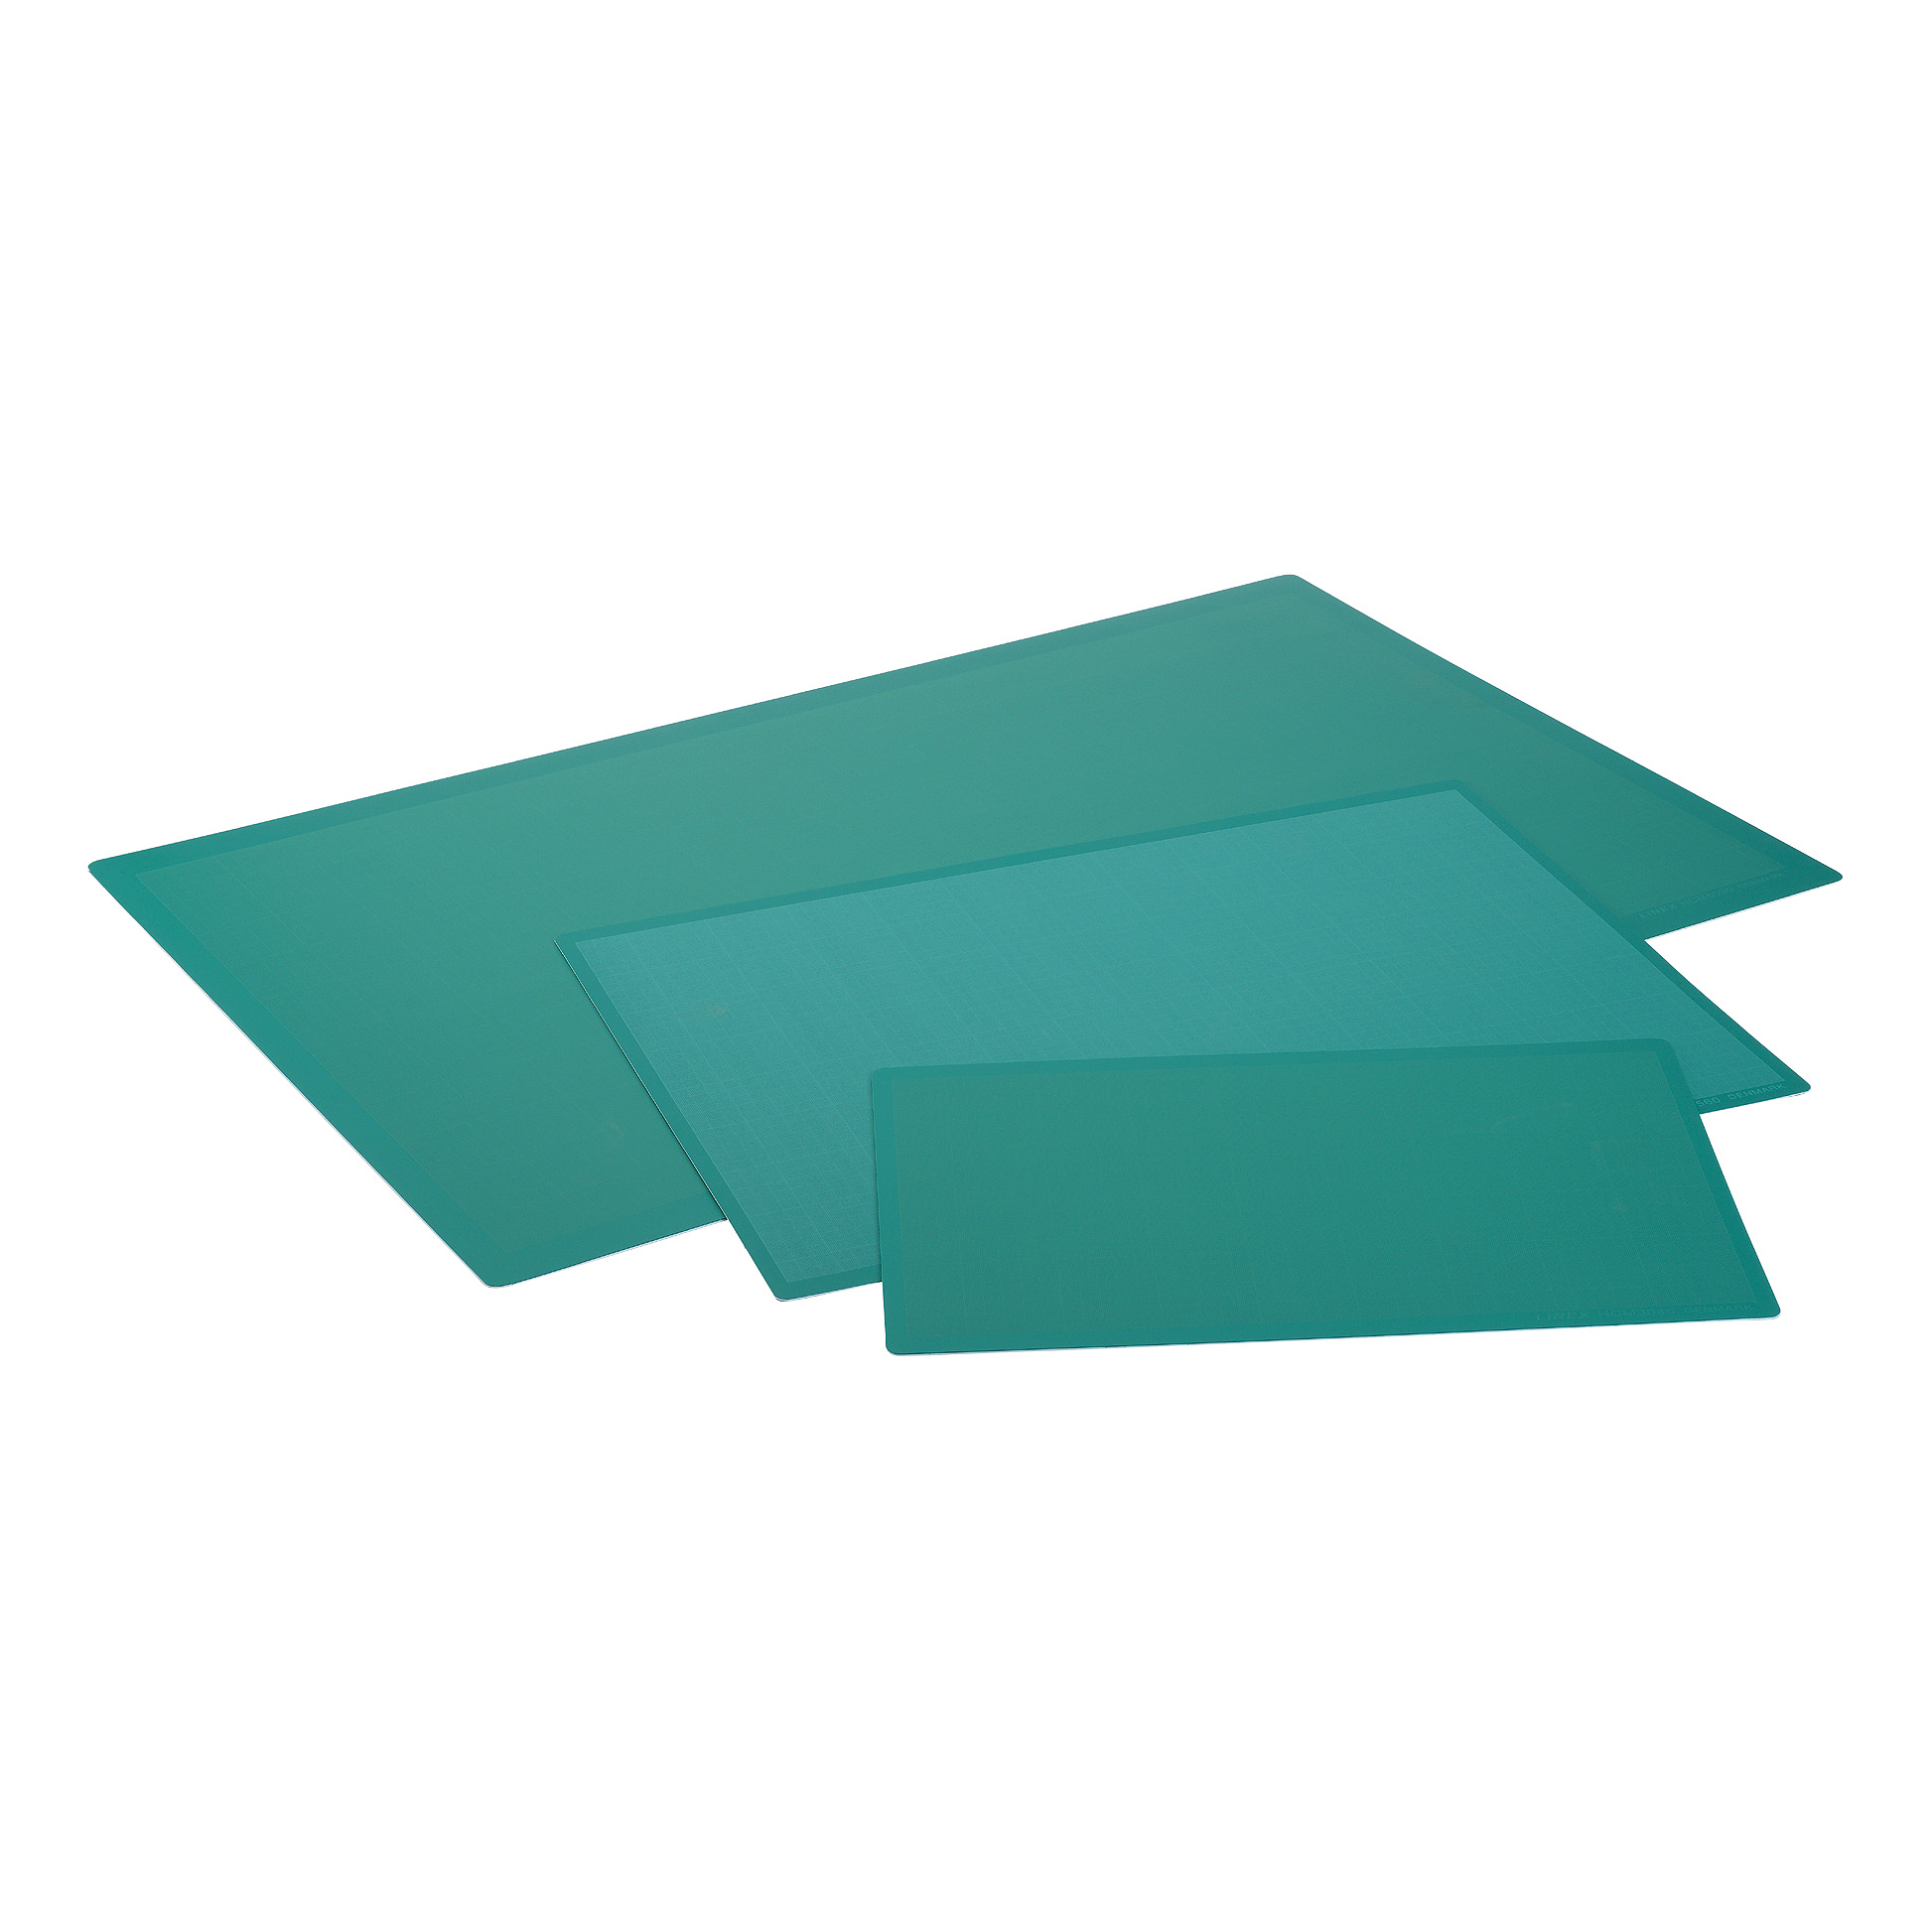 Pattern cutting mats or boards Cutting Mat Anti Slip Self Healing 3 Layers 1mm Grid on Front A2 Green Ref LXKHCM4560